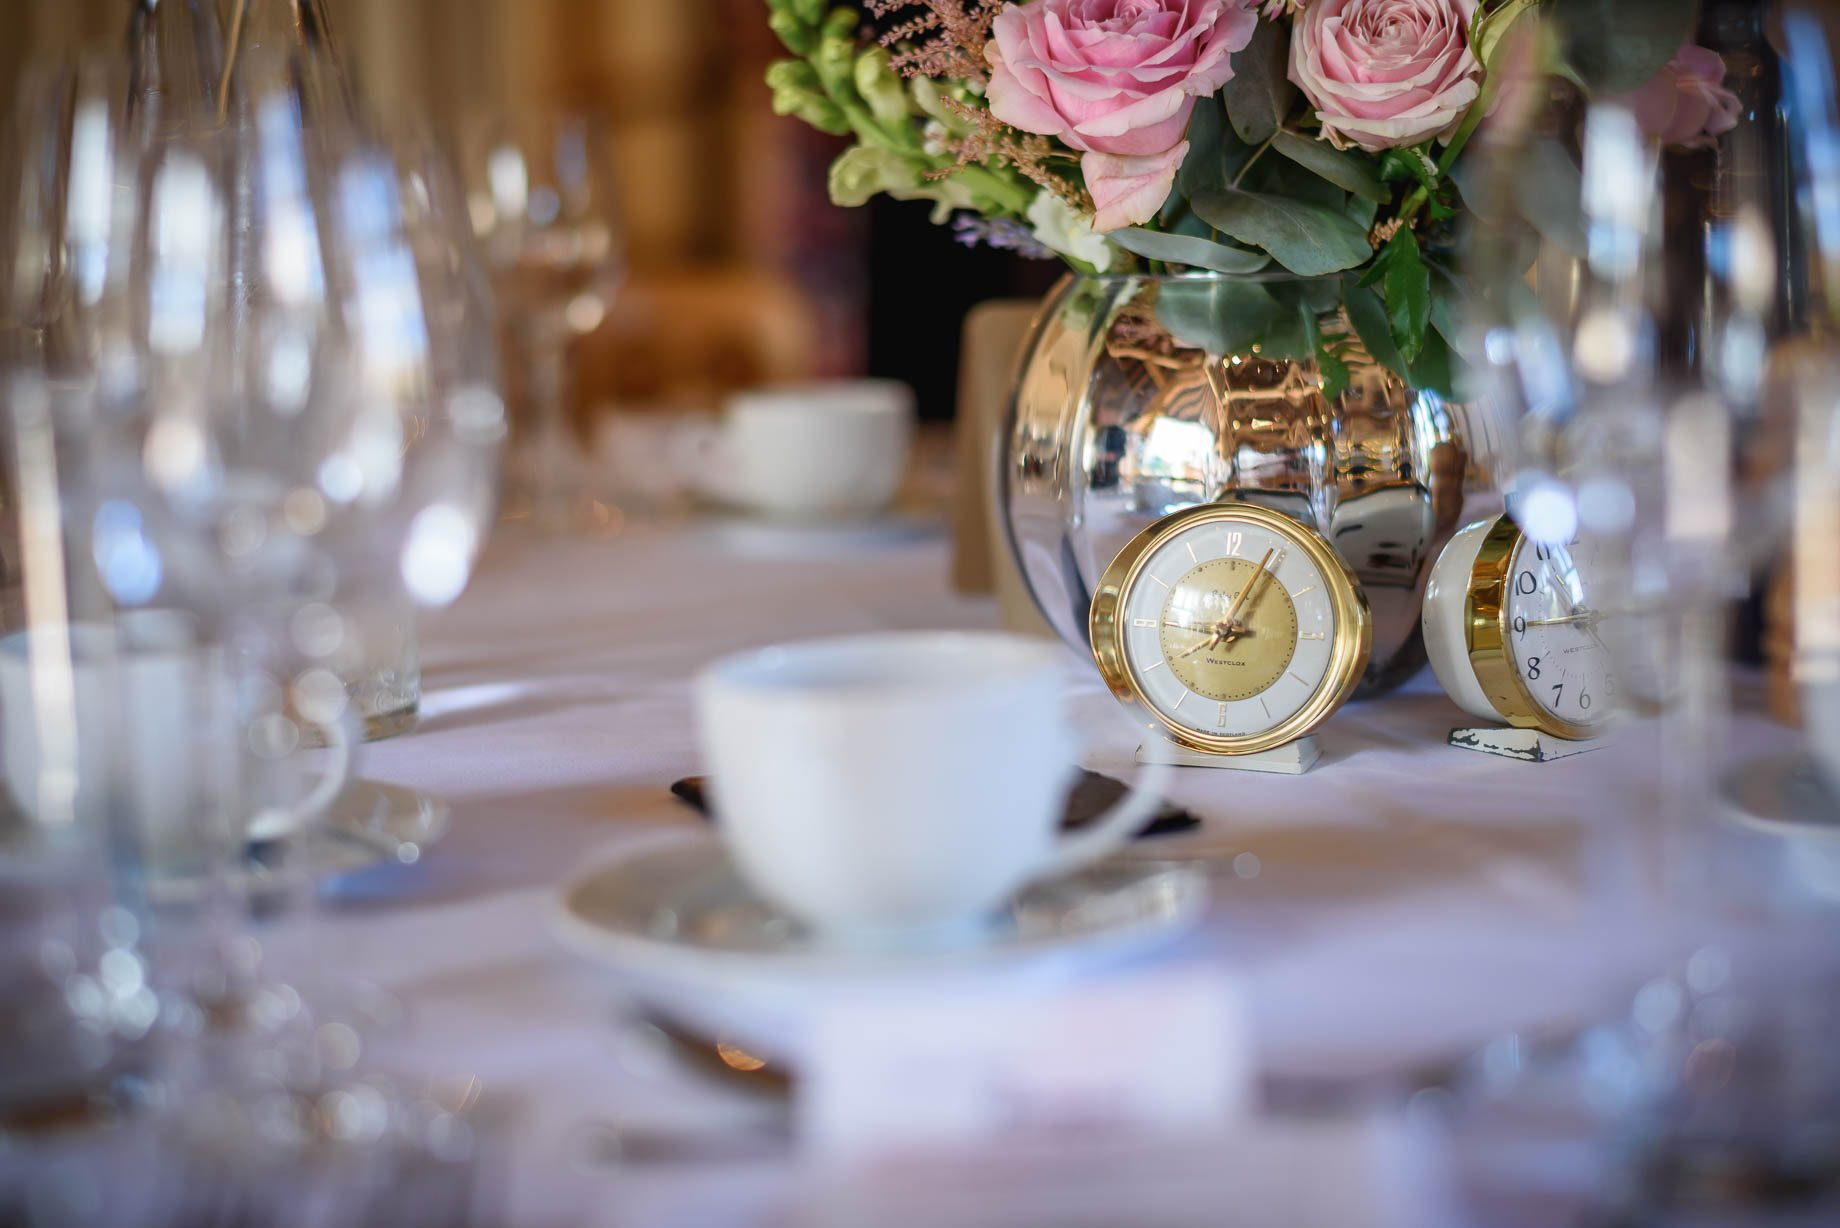 Clock Barn wedding photography by Guy Collier Photography- Rebecca and Dom (112 of 198)